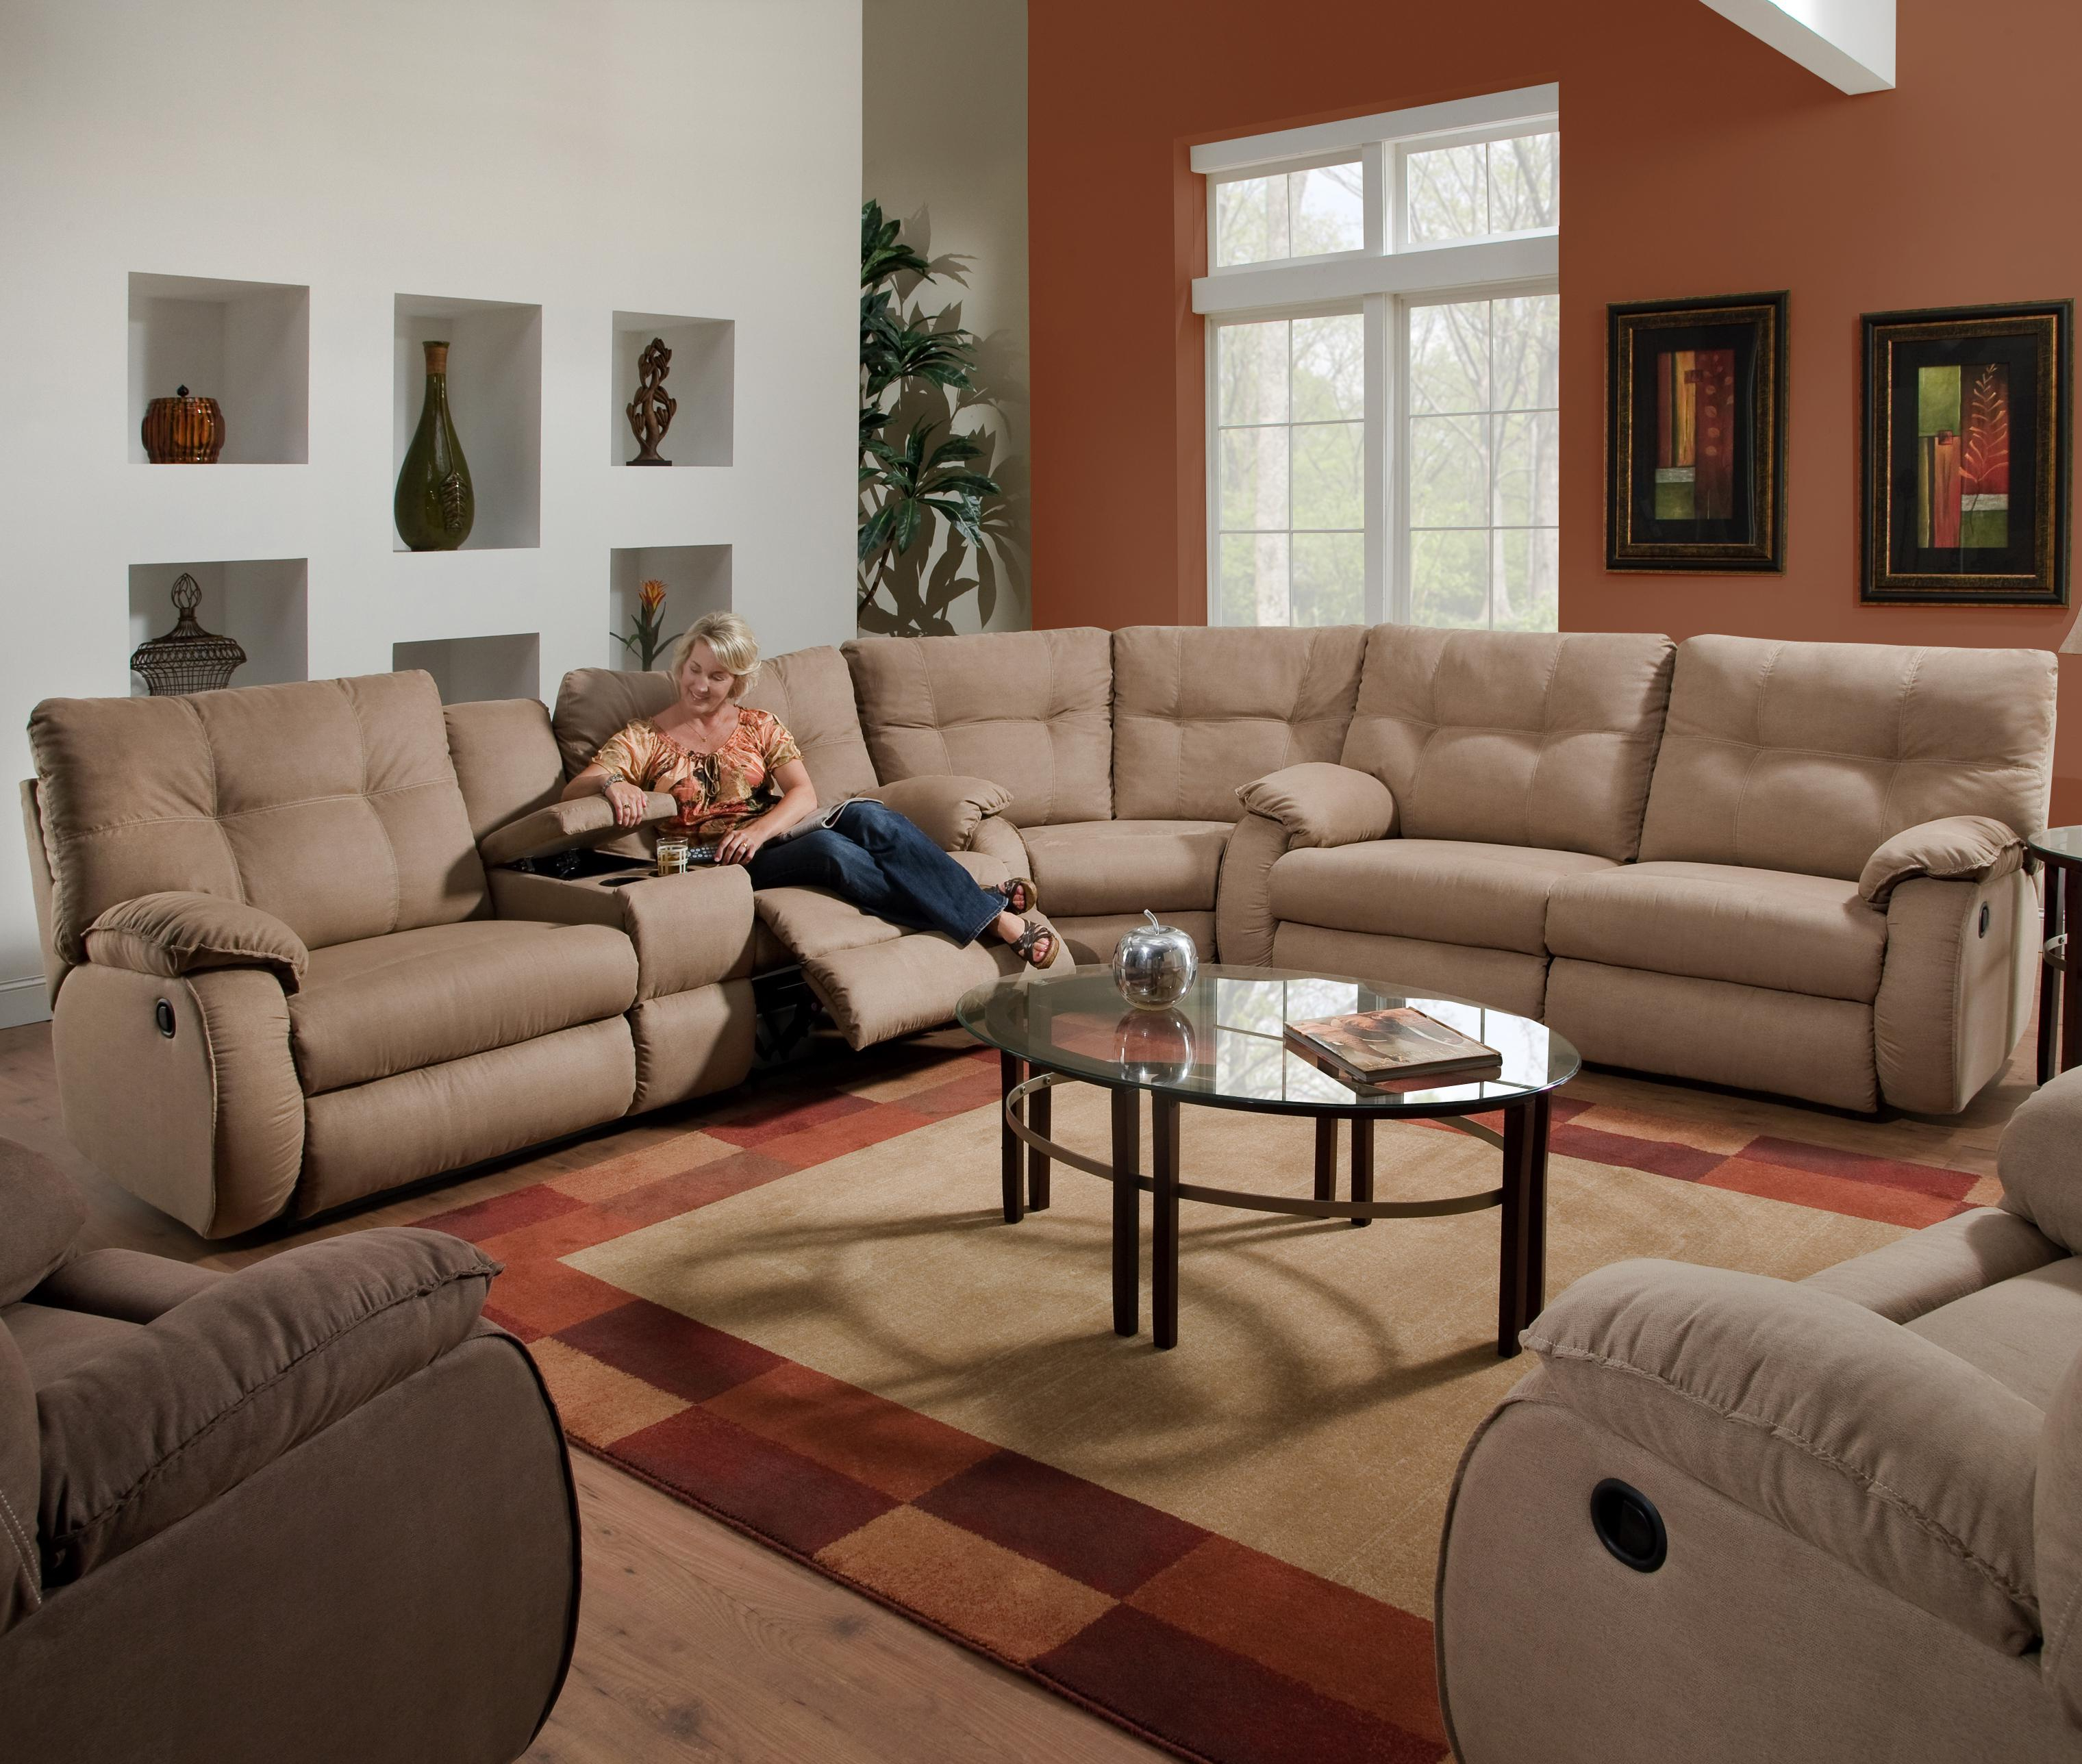 Denali Light Grey 6 Piece Reclining Sectionals With 2 Power Headrests Inside 2019 Sectional Sofa With Hide A Bed (View 18 of 20)